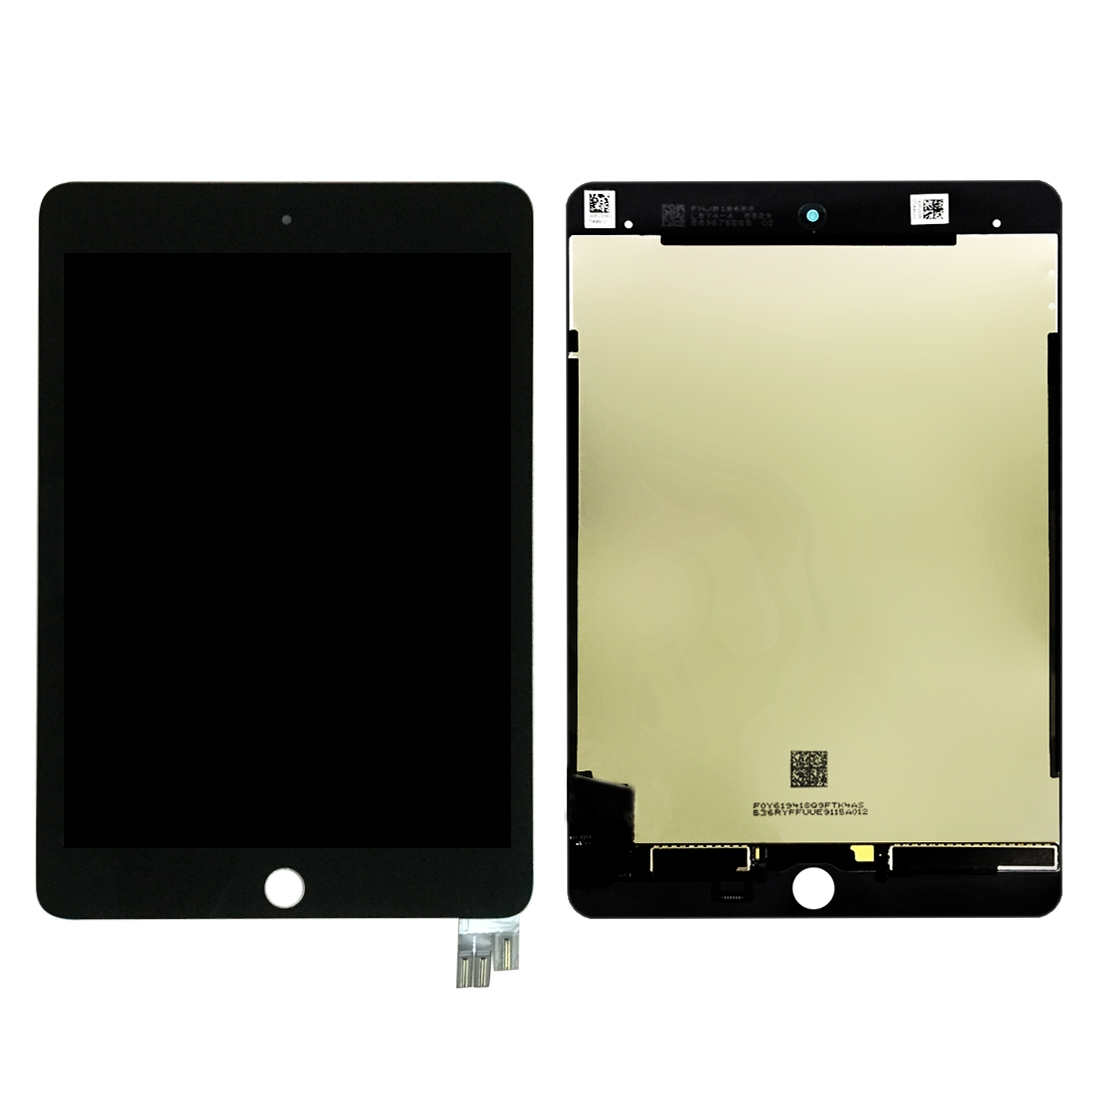 LCD Screen and Digitizer Full Assembly for iPad Mini (2019) 7.9 inch A2124 A2126 A2133 (Black)